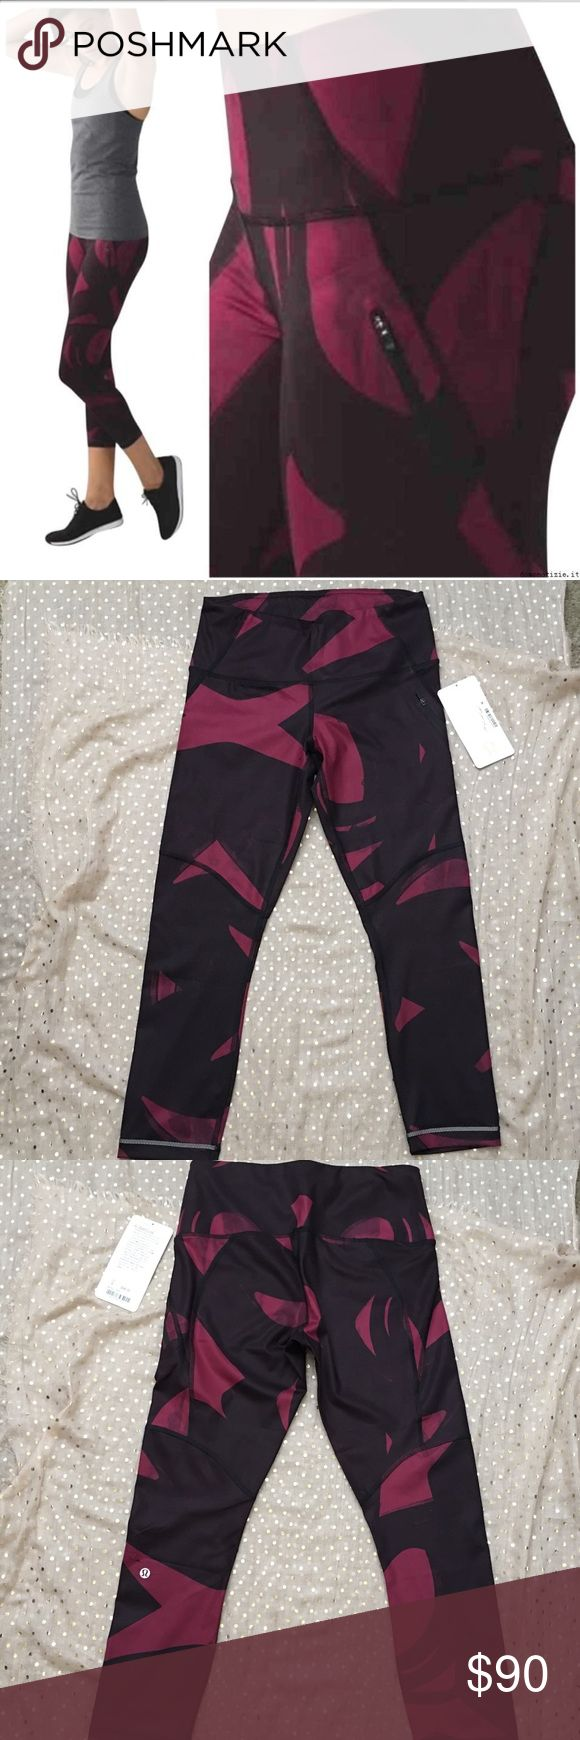 Lululemon All Sport Crop New With Tags, Size 6. Lululemon All Sport Crop in  - Back Spin Stroke Dashing Purple - color code: BSSD lululemon athletica Pants Leggings